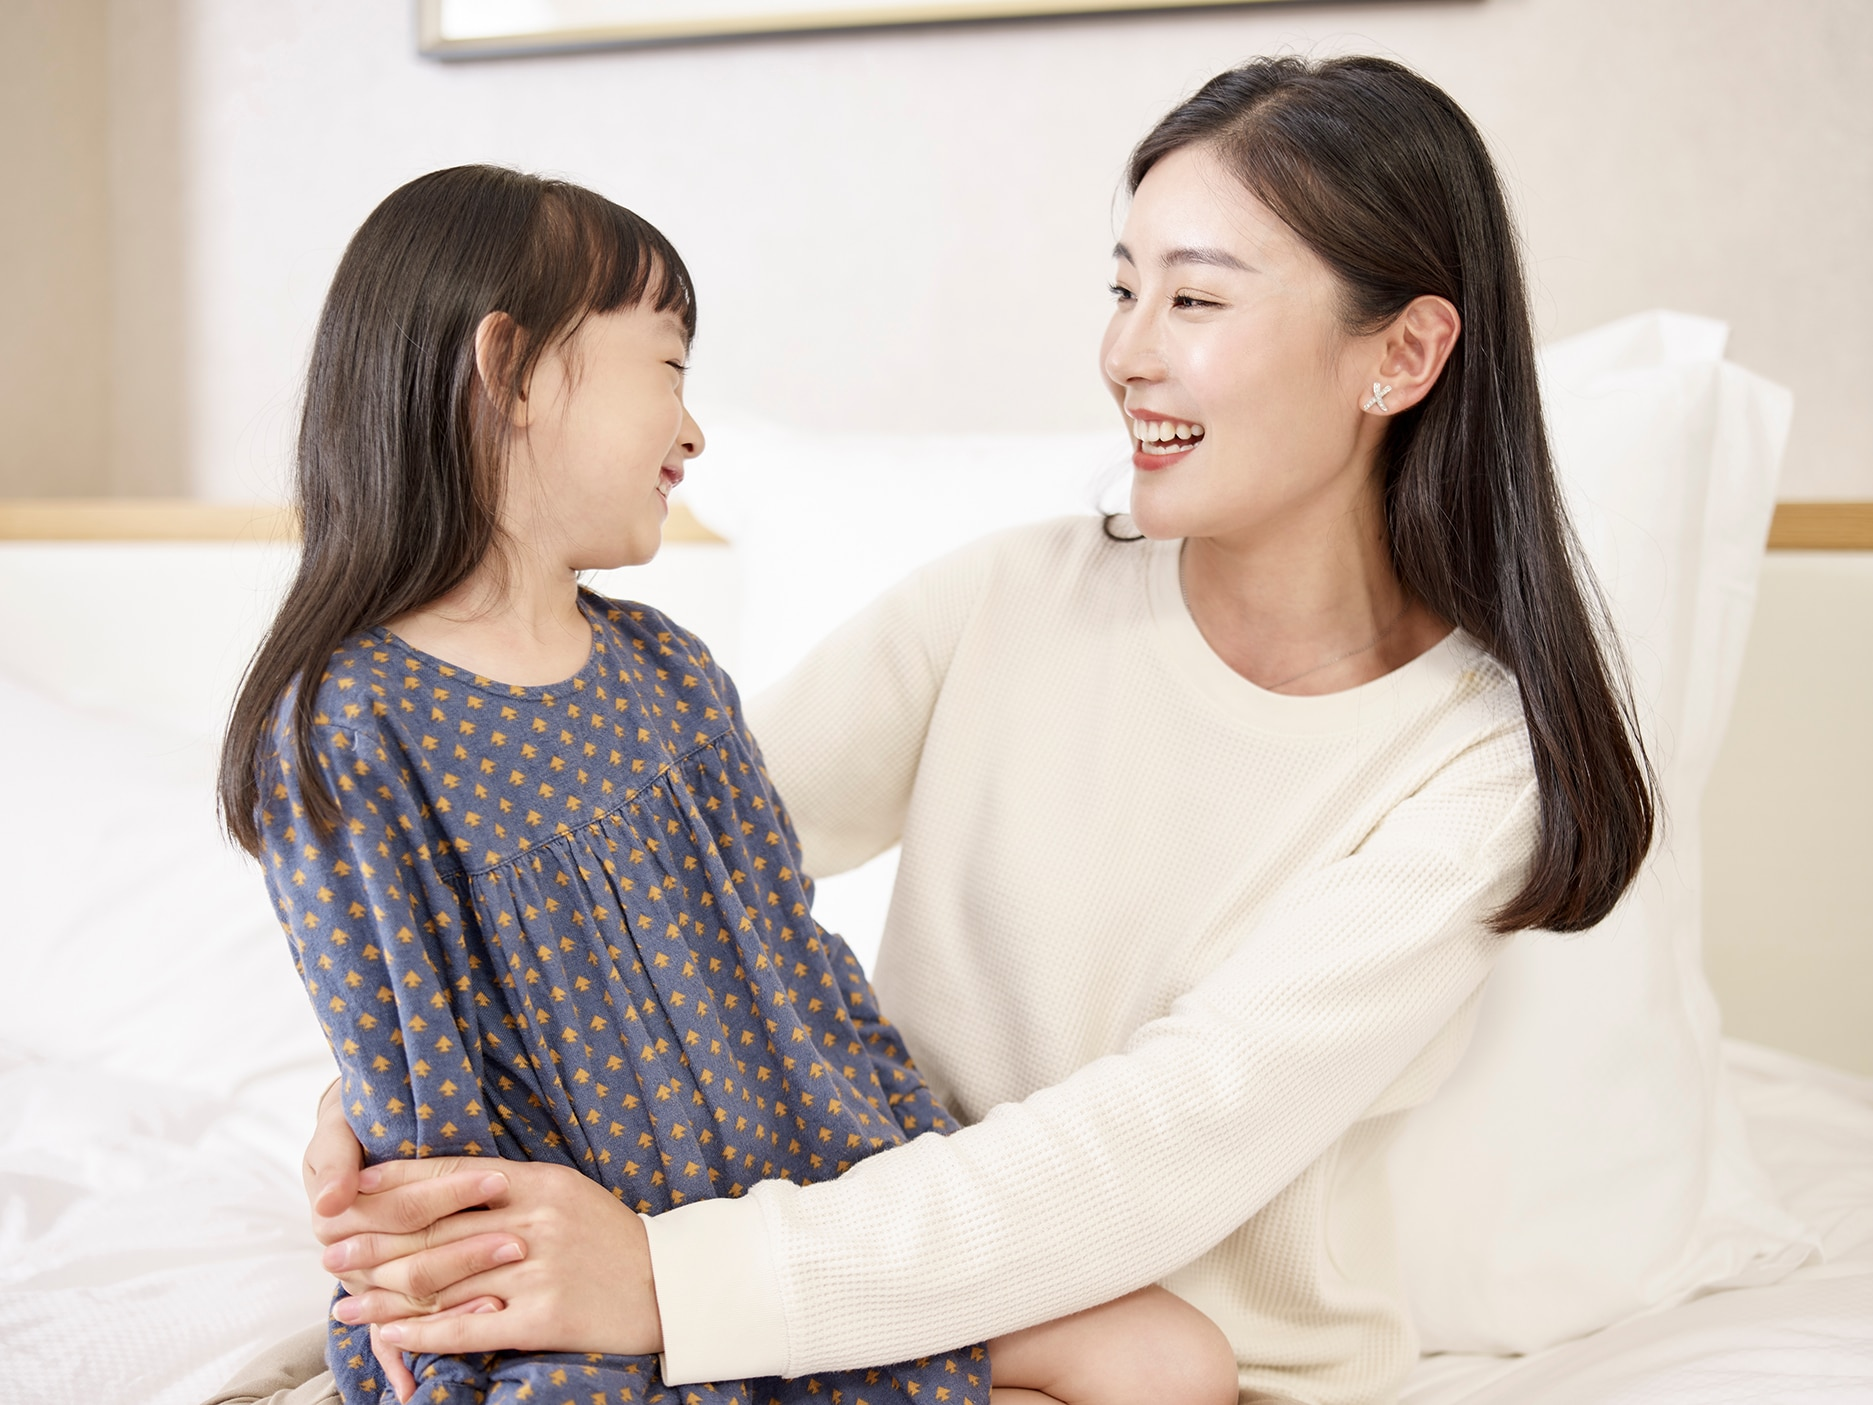 Learning Chinese from a native Chinese speaking teacher enables prepares your child to confidently navigate a globalised world